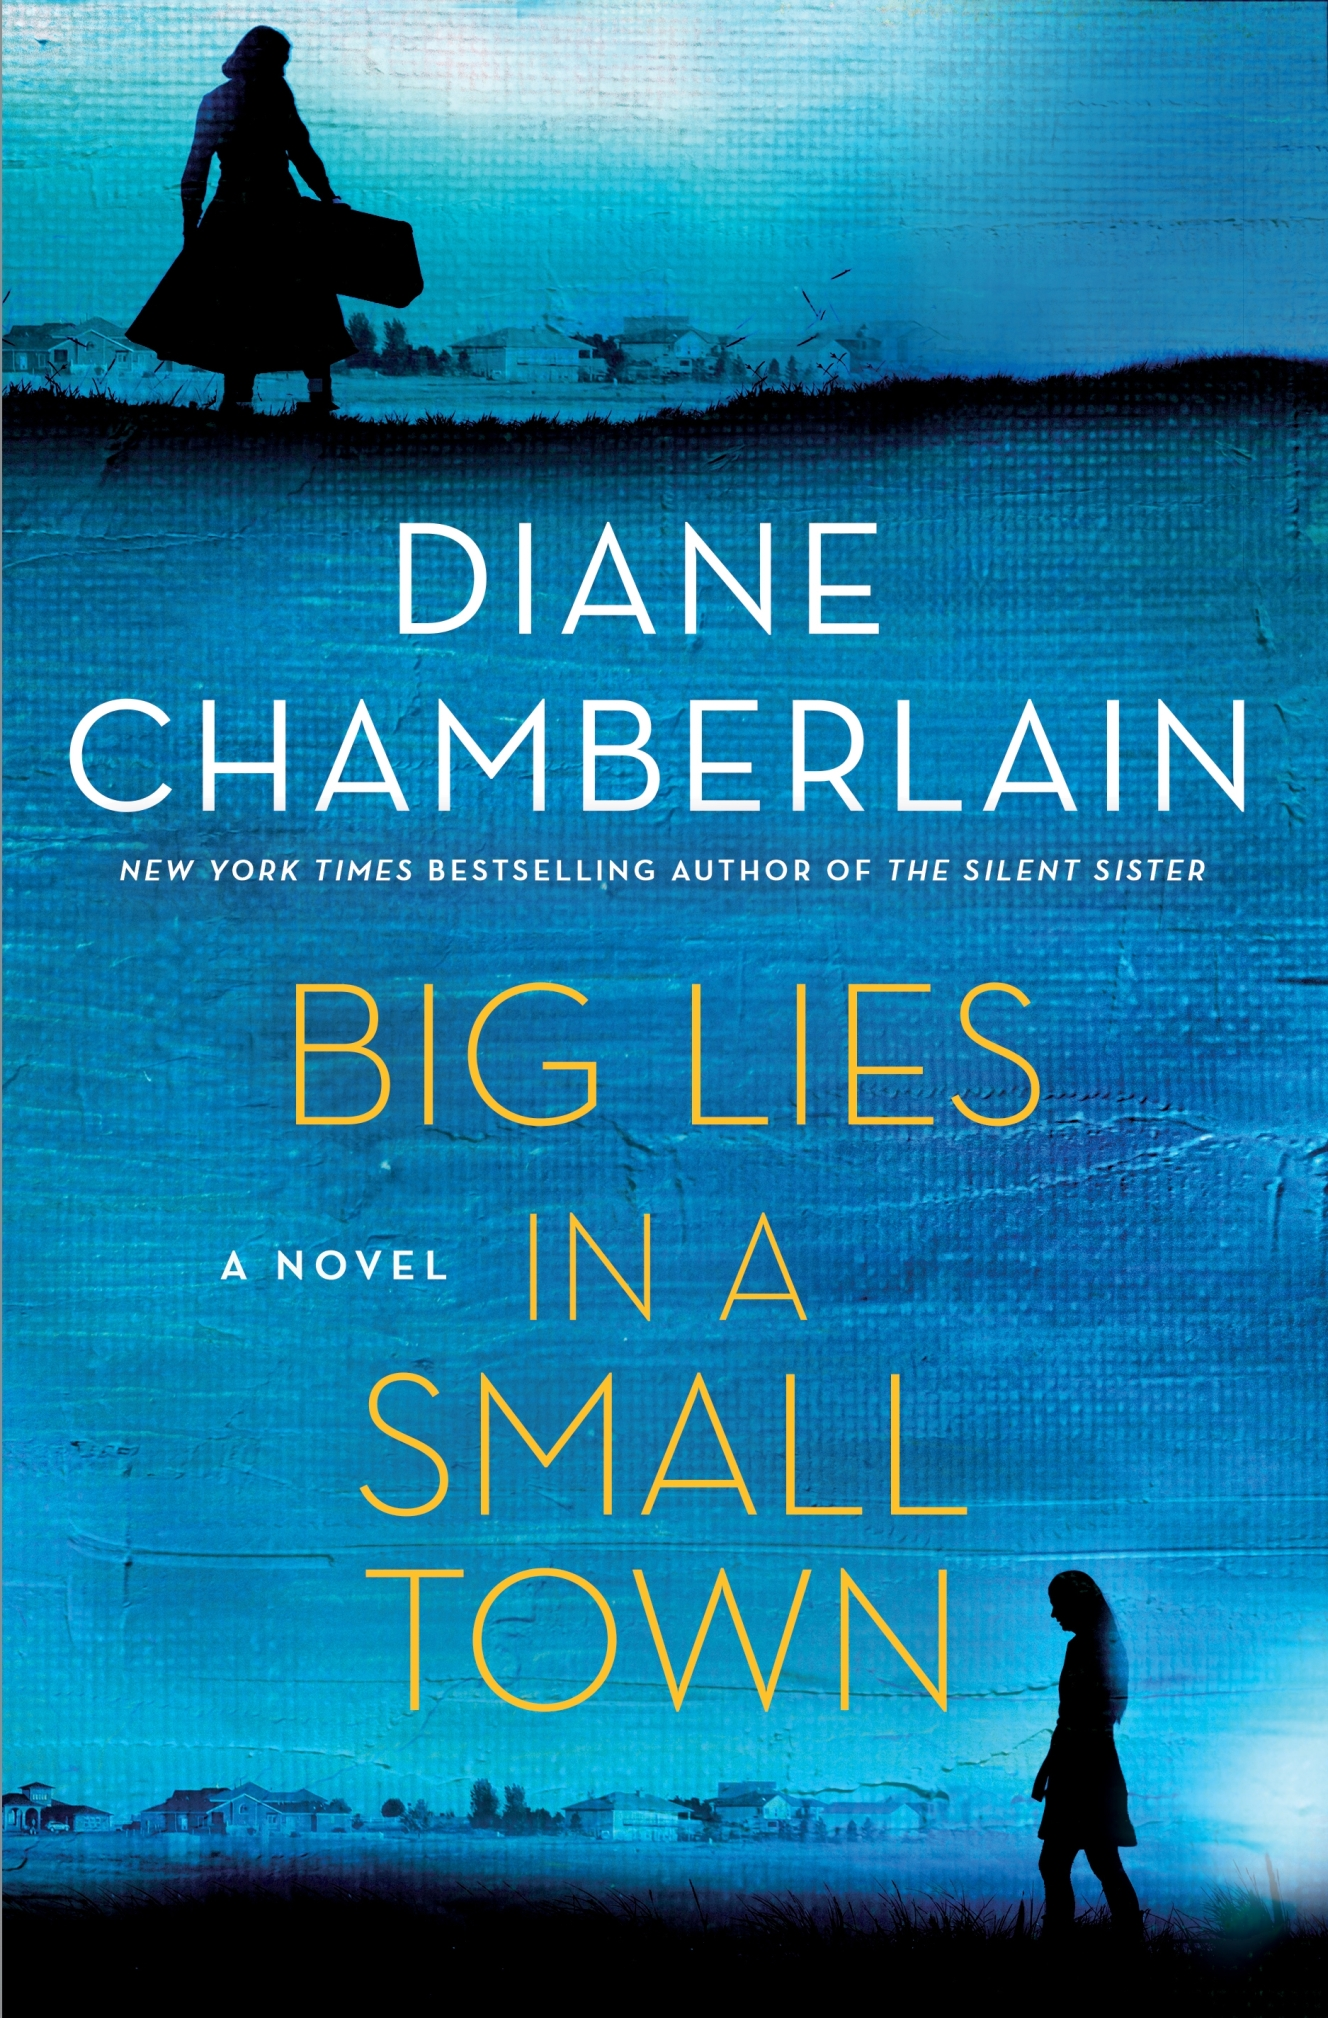 BIG LIES IN A SMALL TOWN_cover.jpg